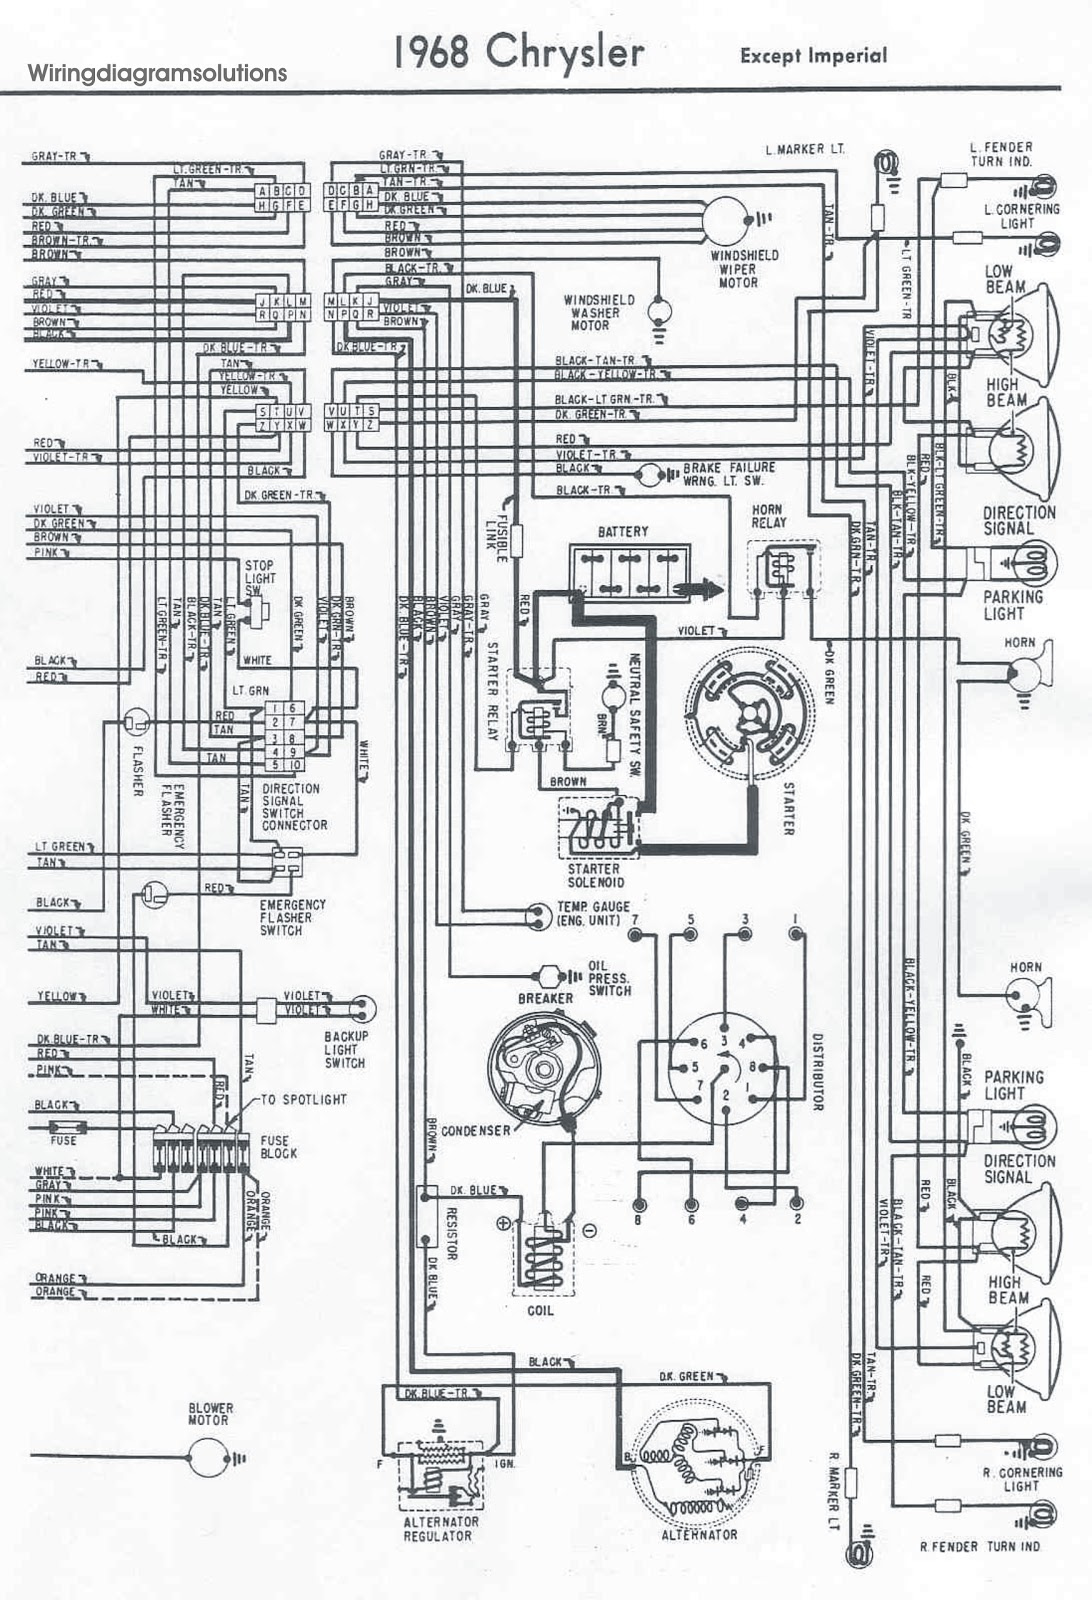 Diagram 1947 Chrysler Wiring Diagram Full Version Hd Quality Wiring Diagram Schematic Pr Media90 It